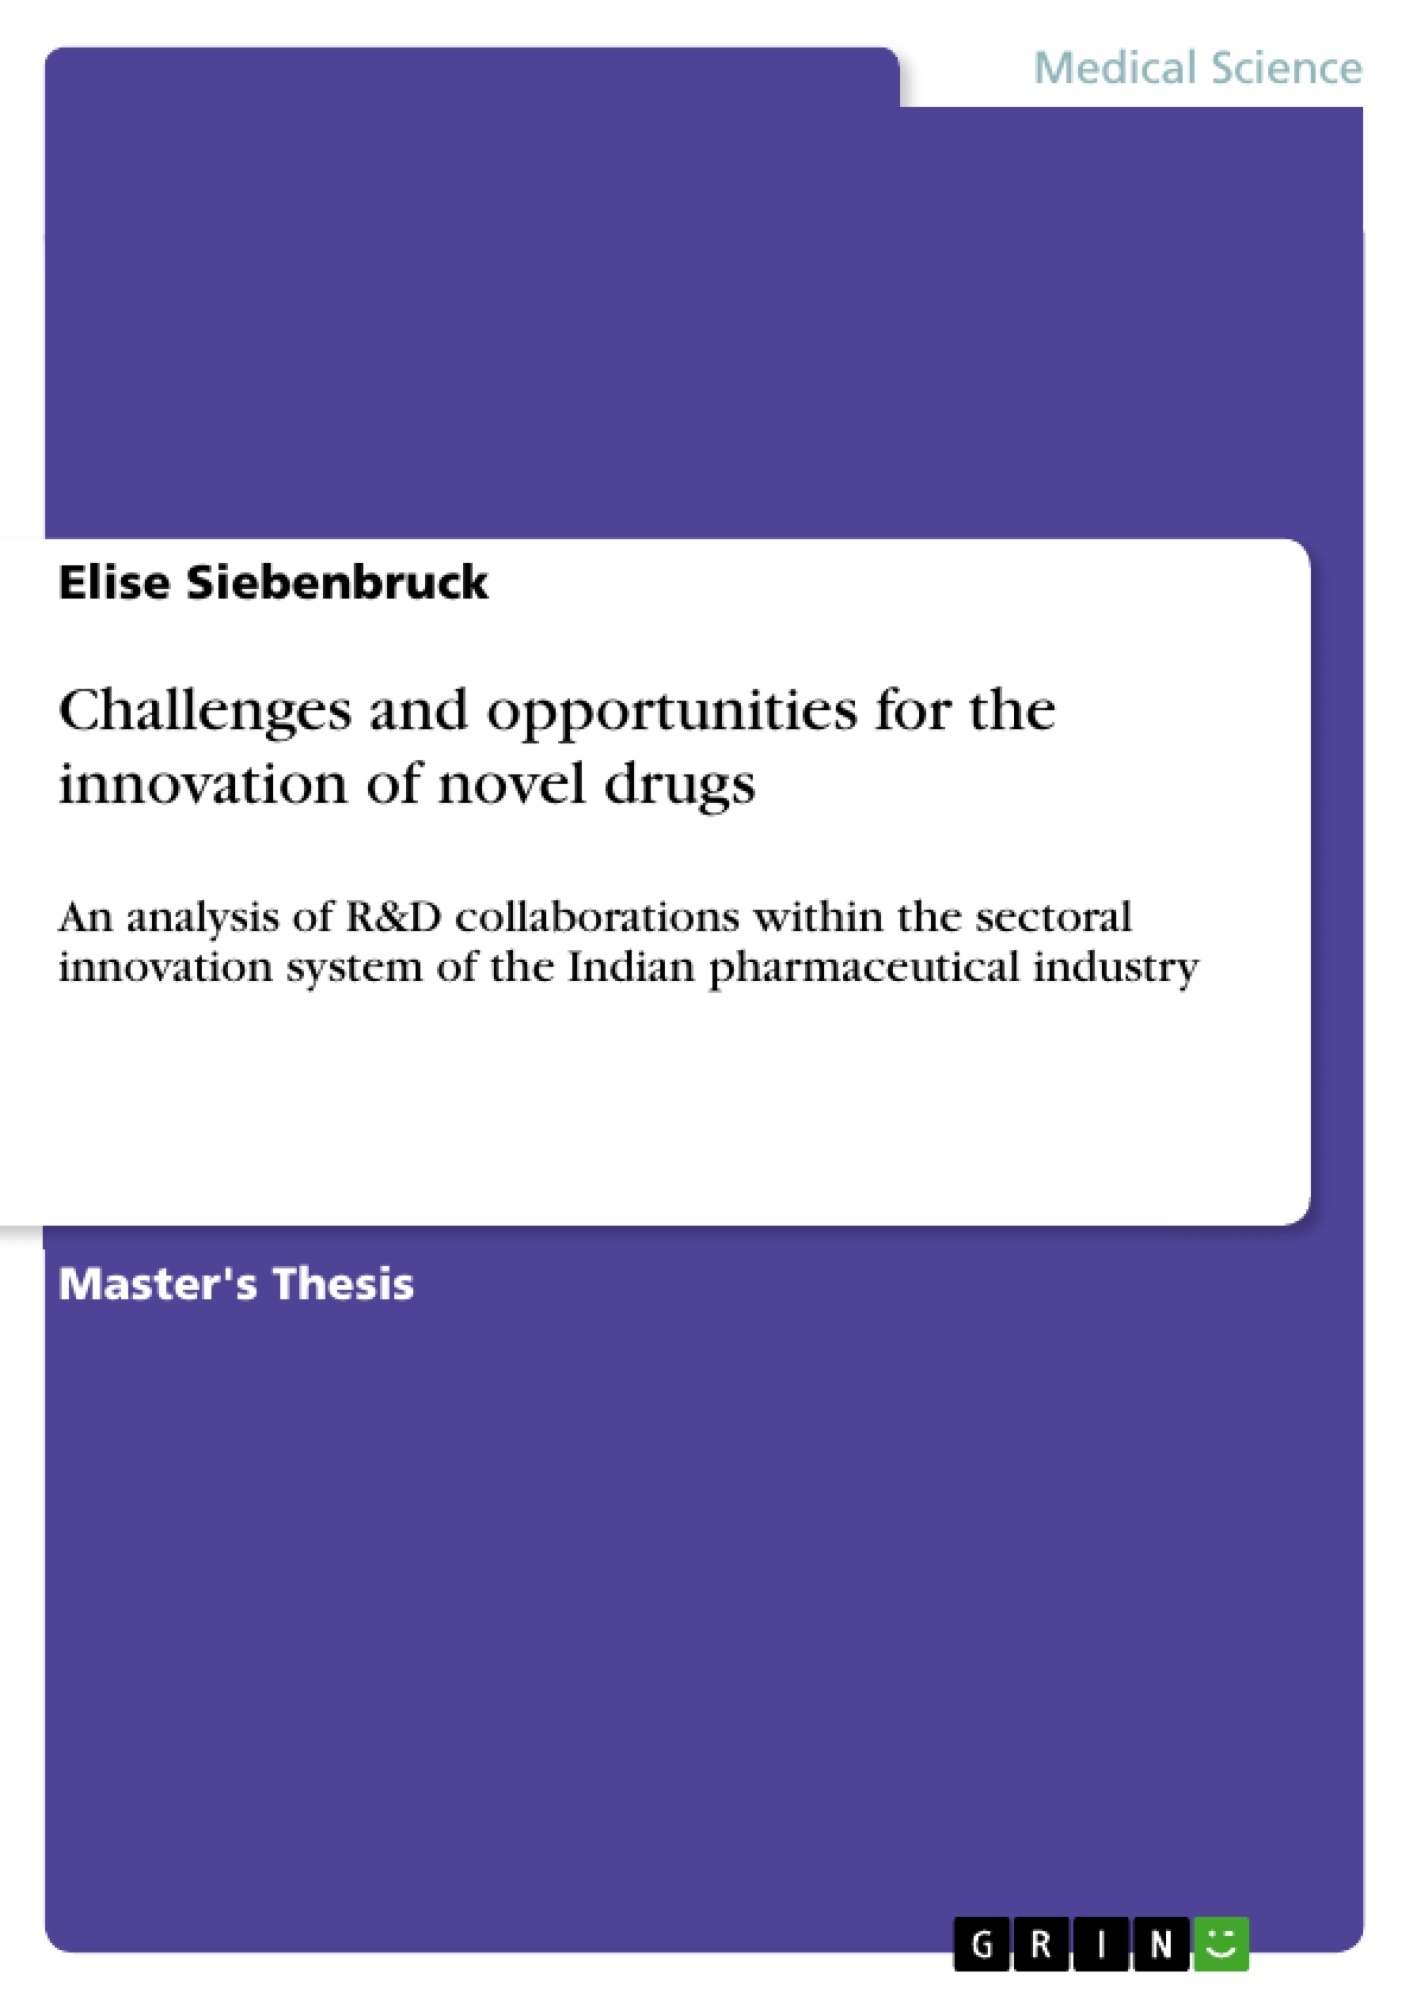 Title: Challenges and opportunities for the innovation of novel drugs